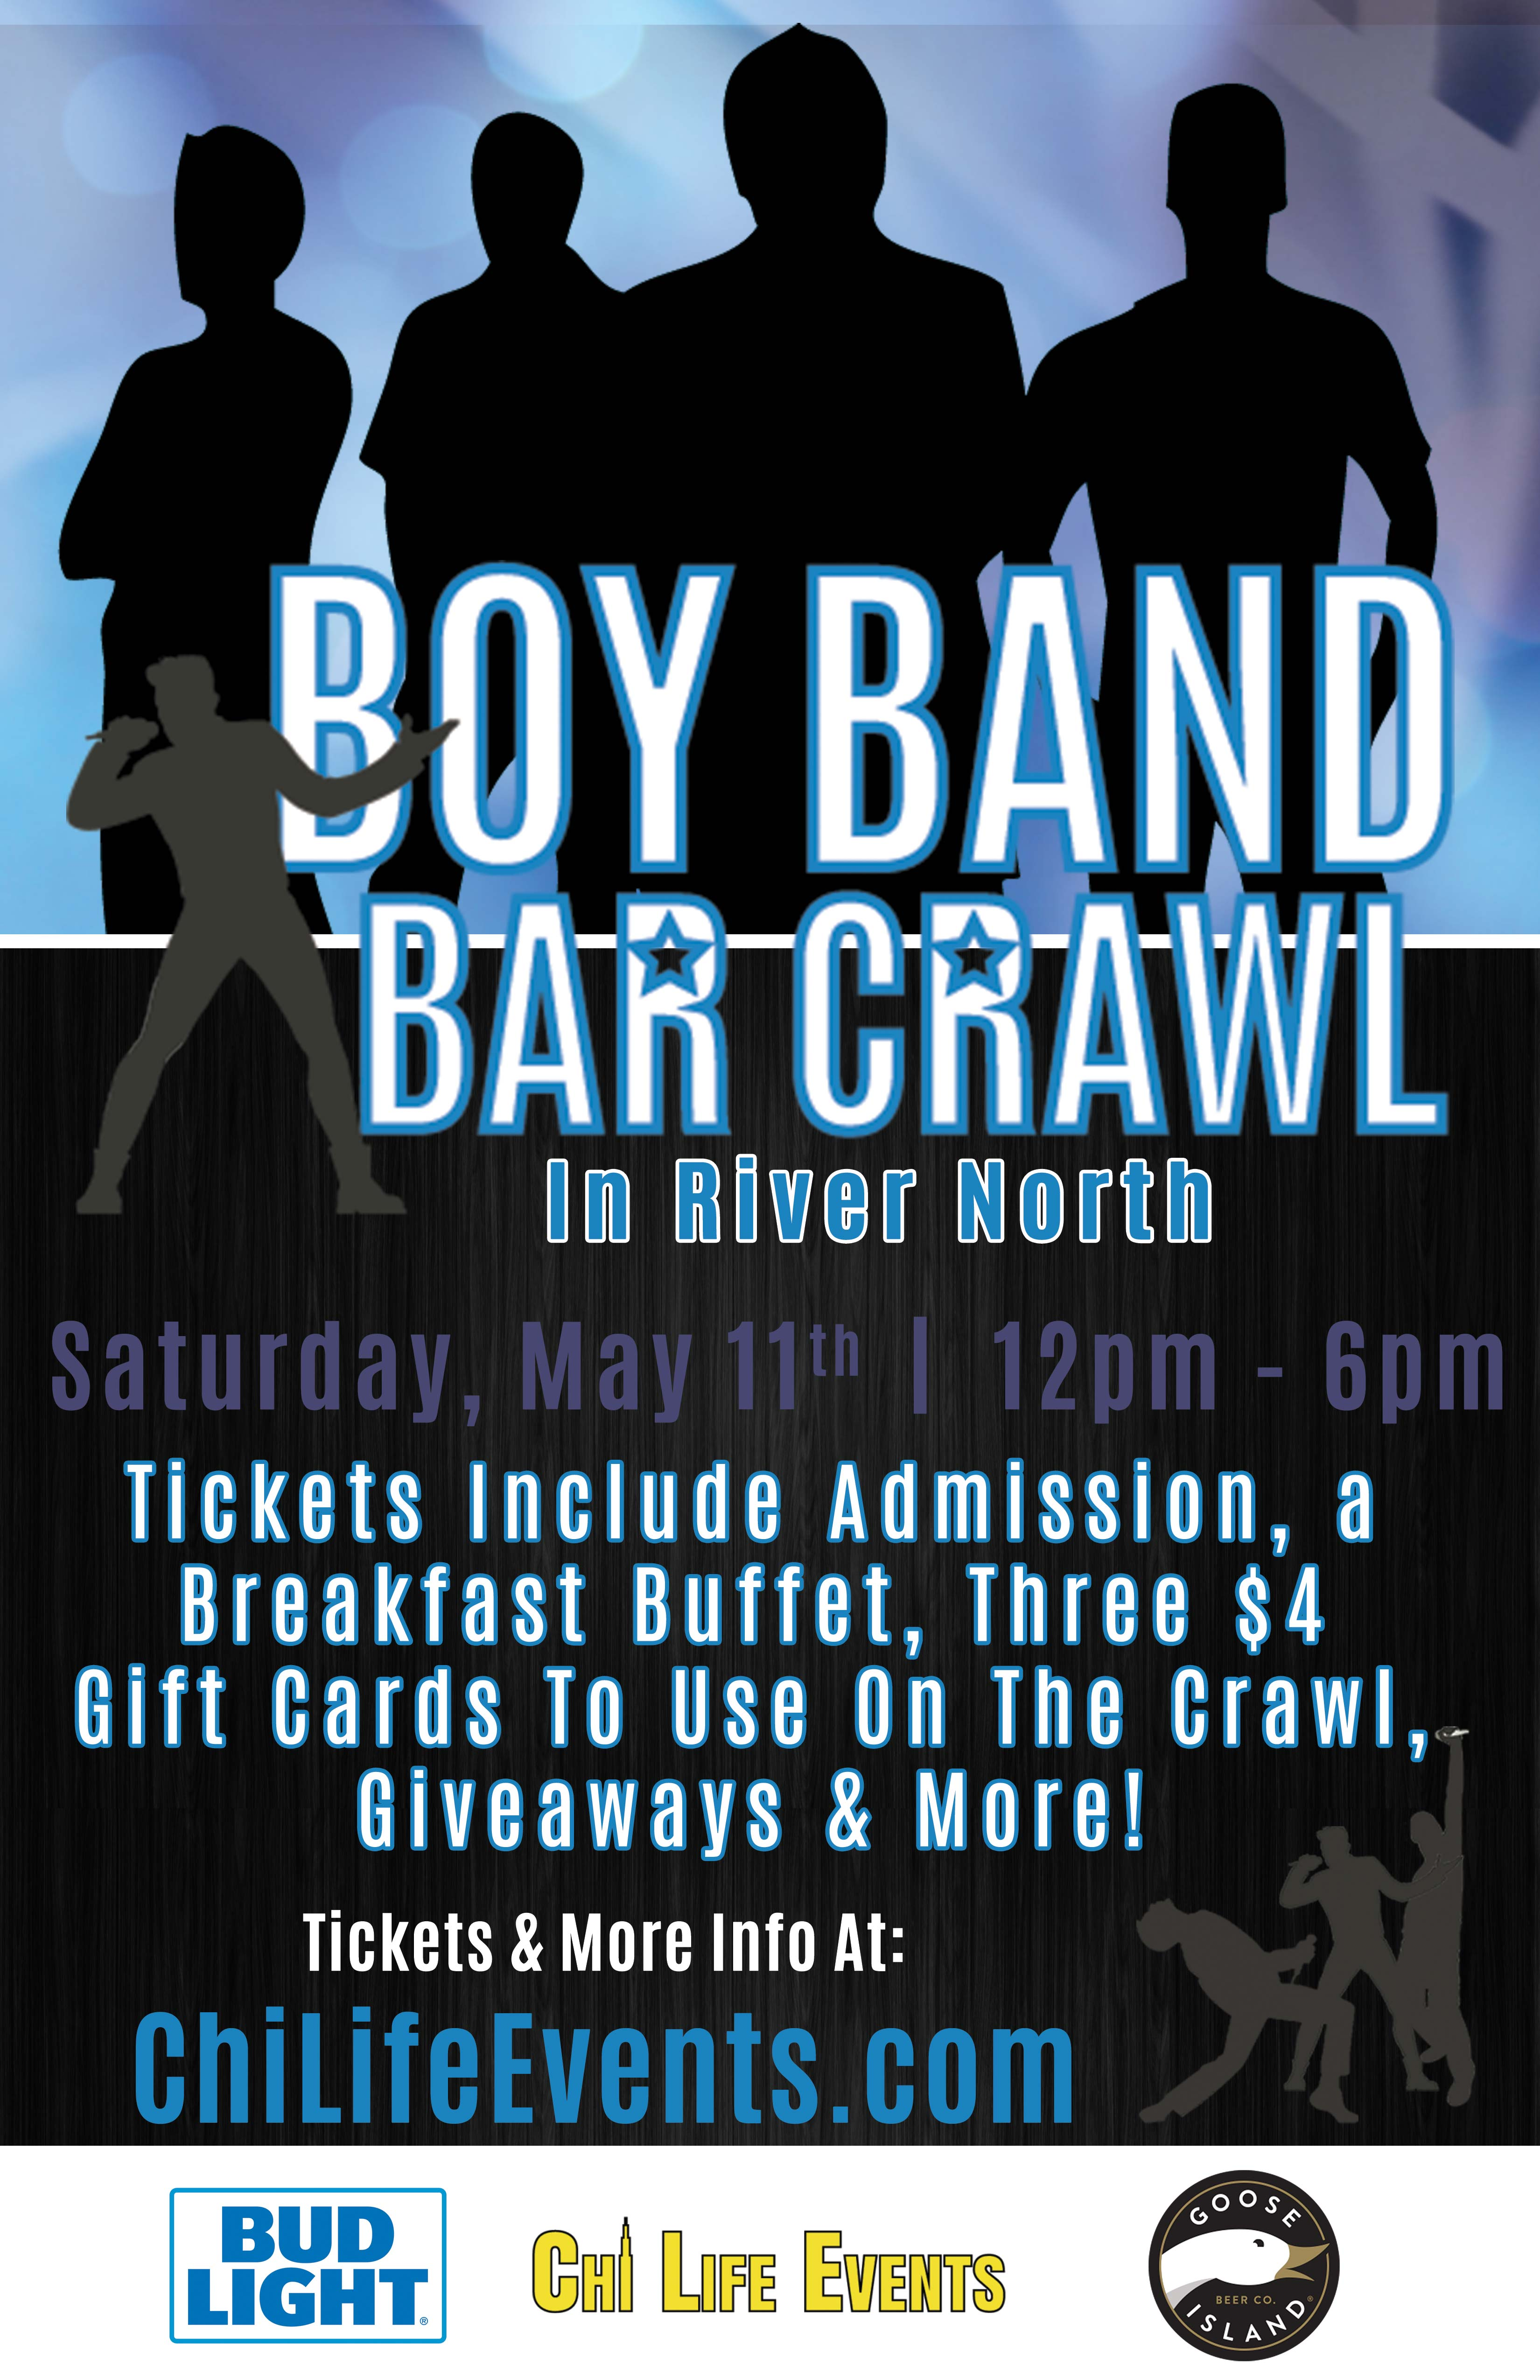 Boy Band Bar Crawl Party - Tickets include Admission, a Breakfast Buffet, Three $4 Gift Cards to Use on the Crawl, Giveaways and More!